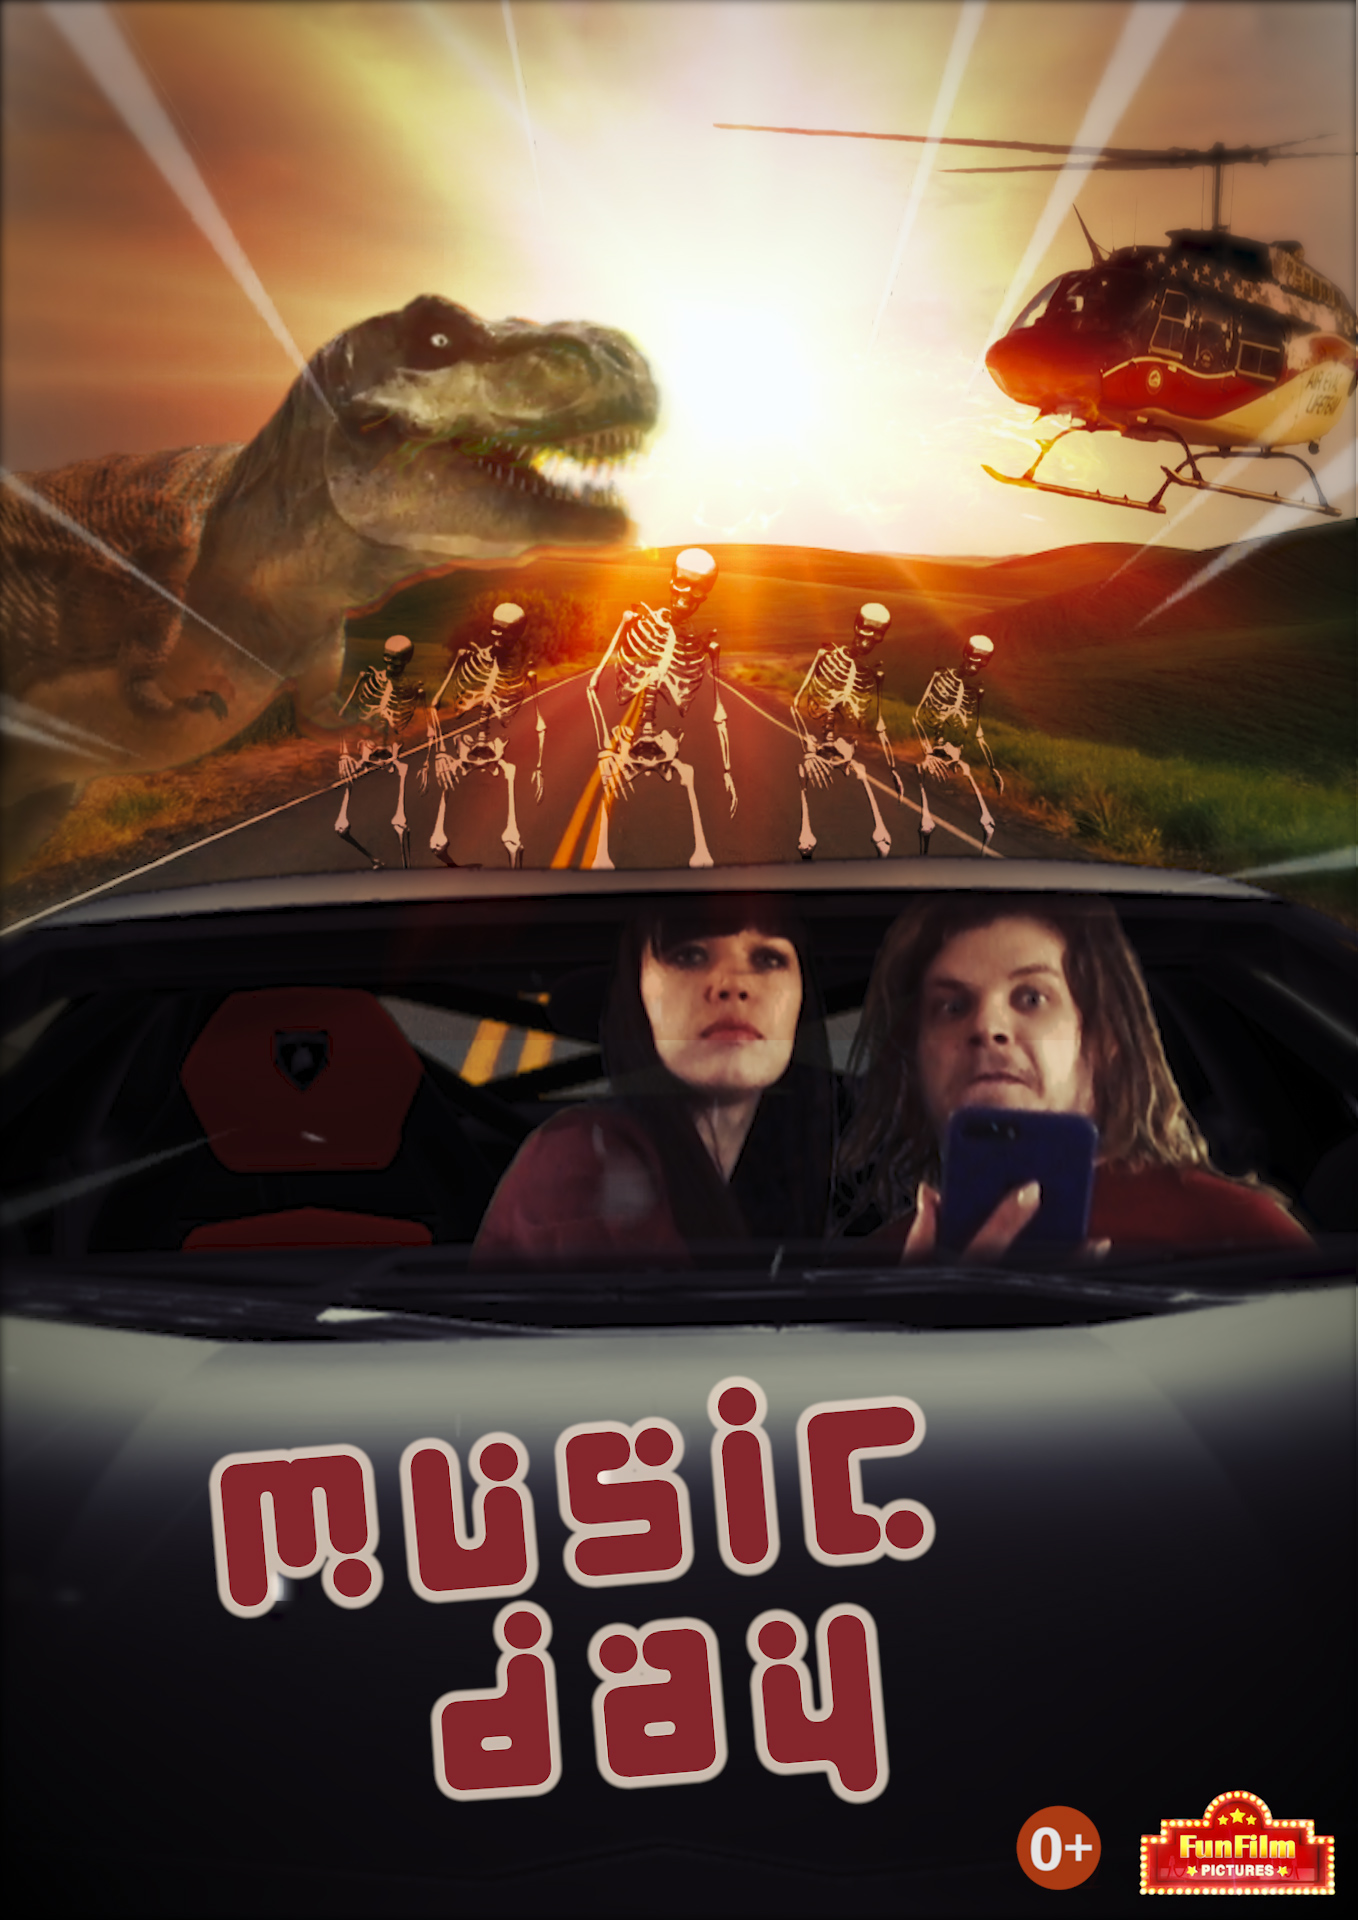 MUSIC DAY POSTER 2 - Music Day